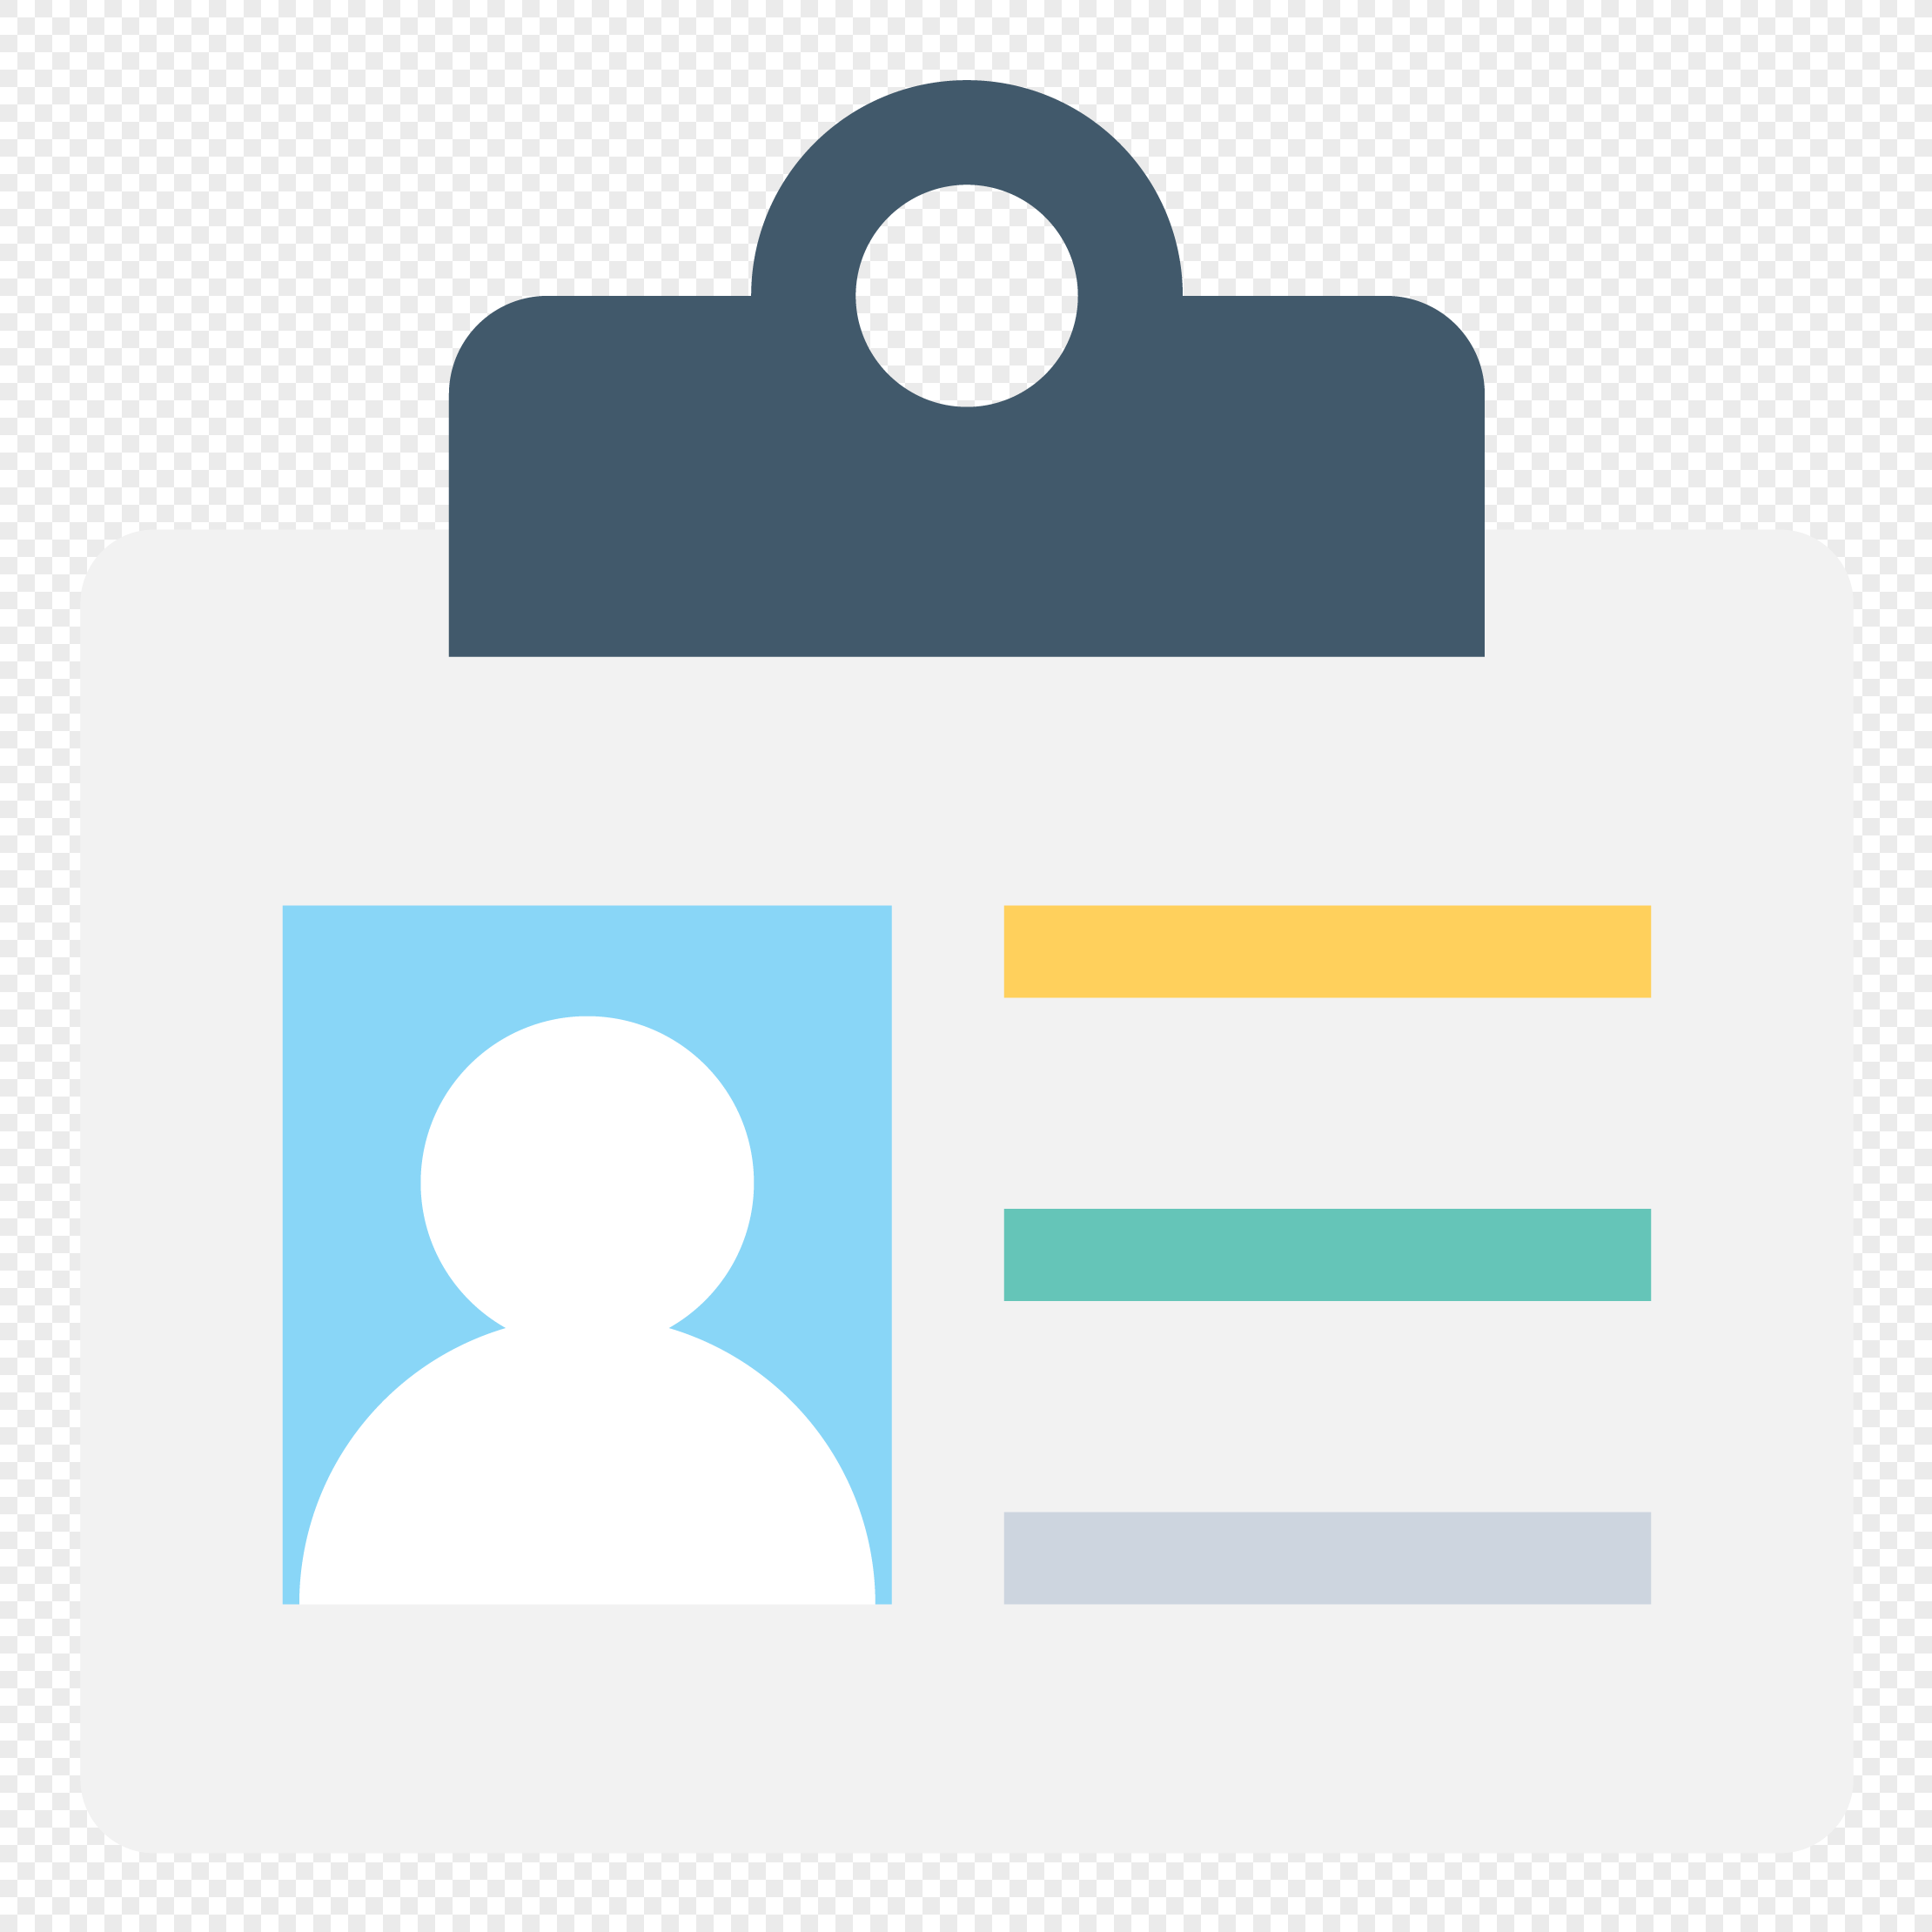 Resume Icons Png Image Picture Free Download 400525732 Lovepik Com